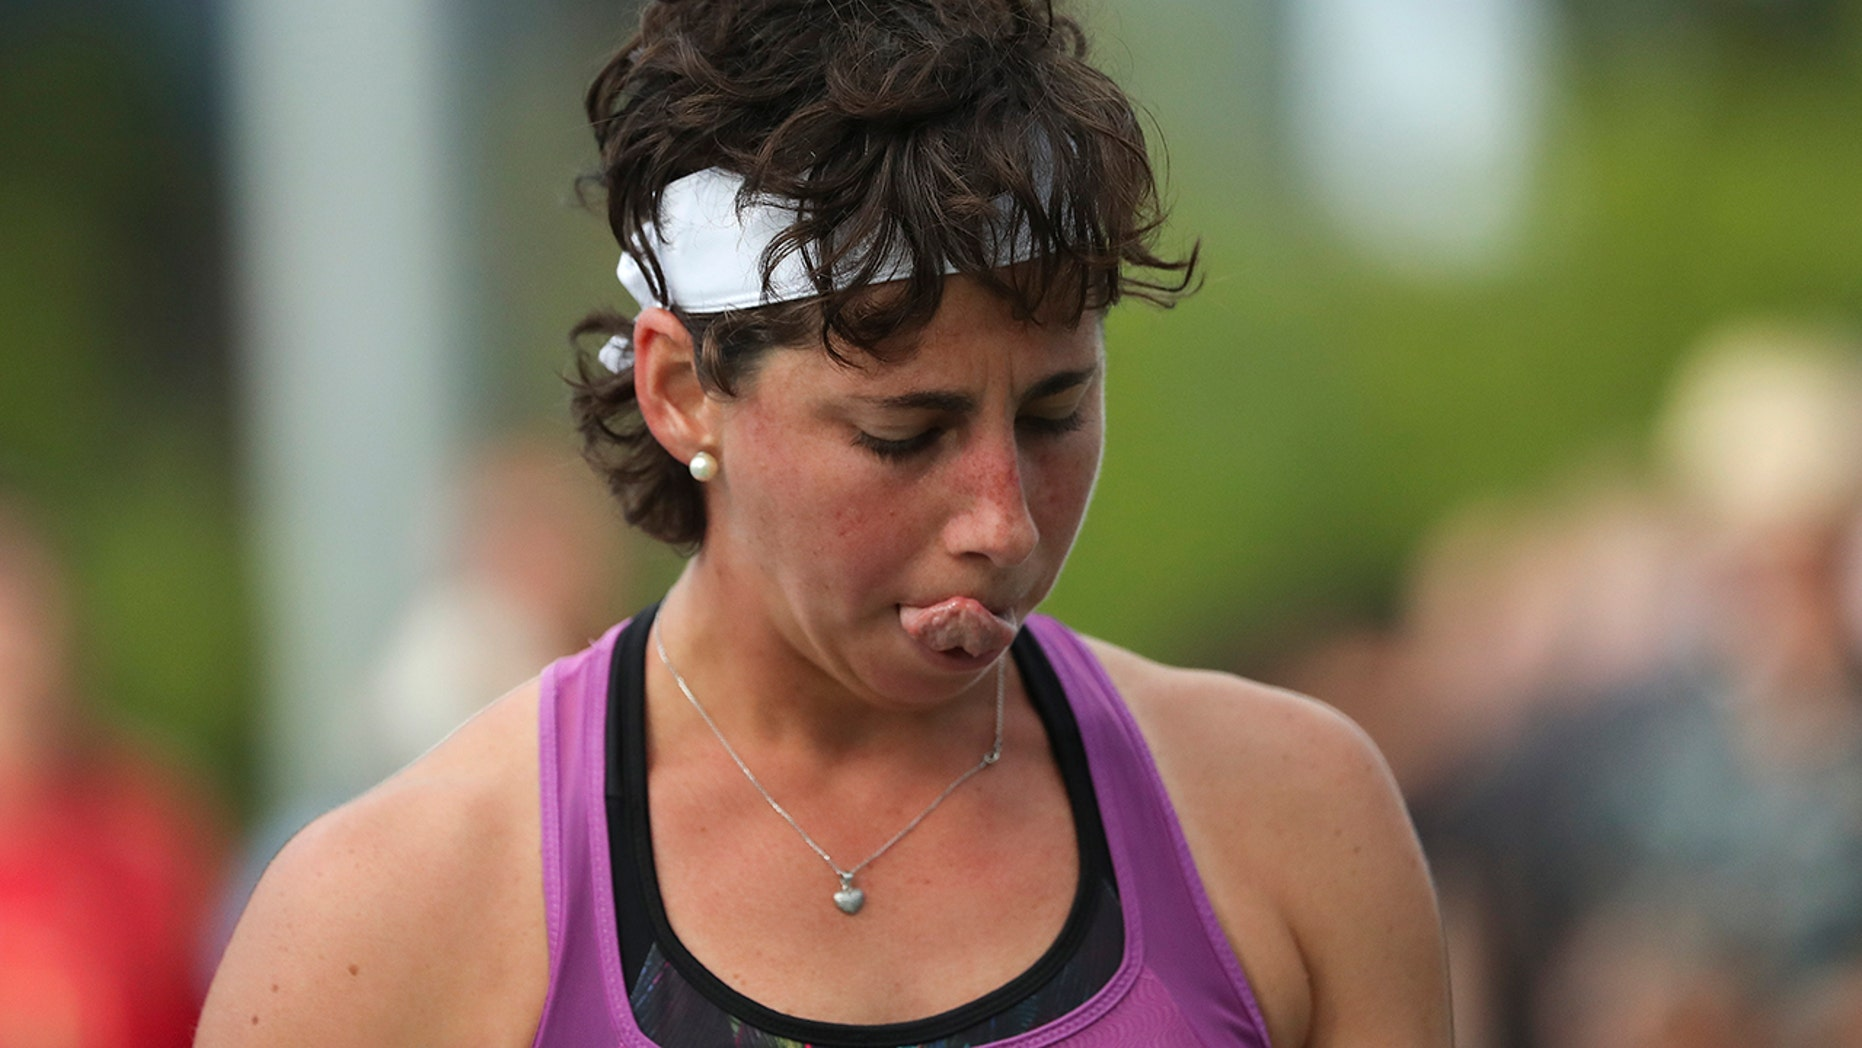 "Spaniard Carla Suarez Navarro reacts after losing one point against Hungarian Timea Babos in New York on Tuesday, August 27, 201<div class=""e3lan e3lan-in-post1""><script async src=""//pagead2.googlesyndication.com/pagead/js/adsbygoogle.js""></script>